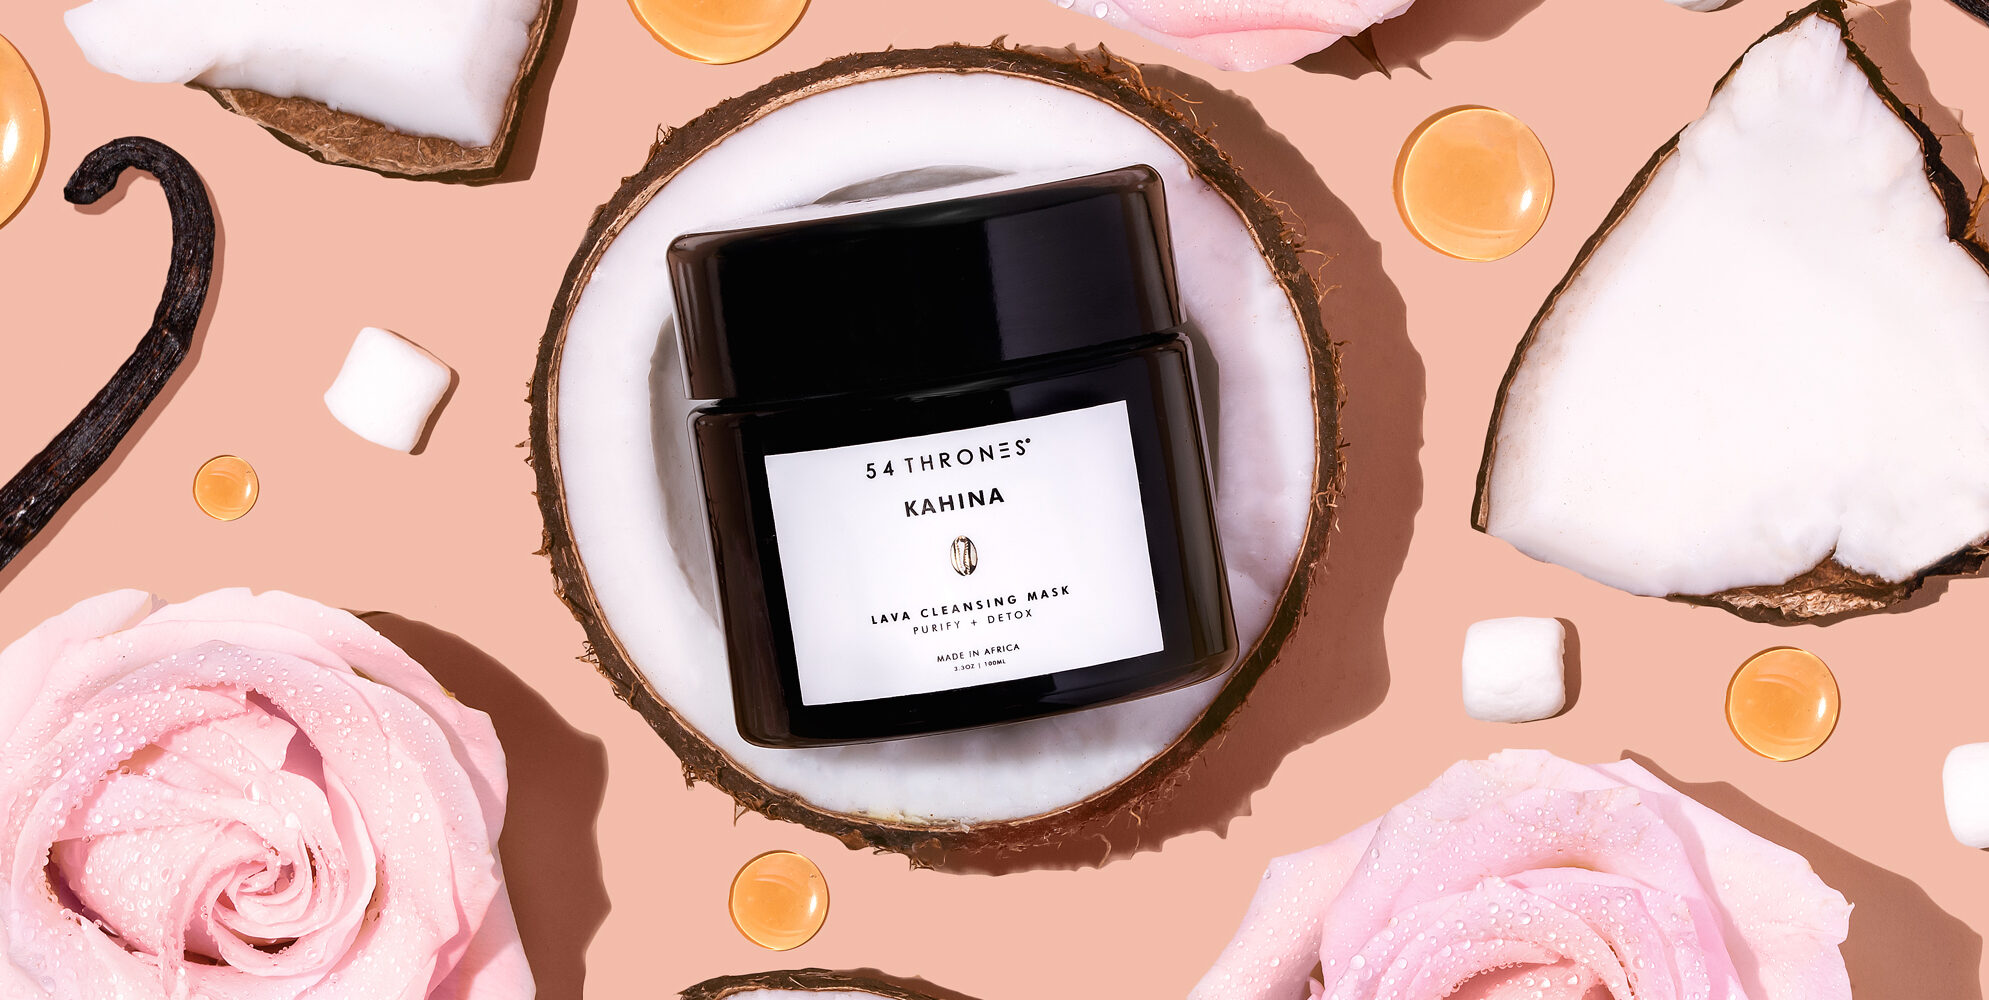 Skincare Brand 54 Thrones Celebrates And Elevates African Beauty Ingredients